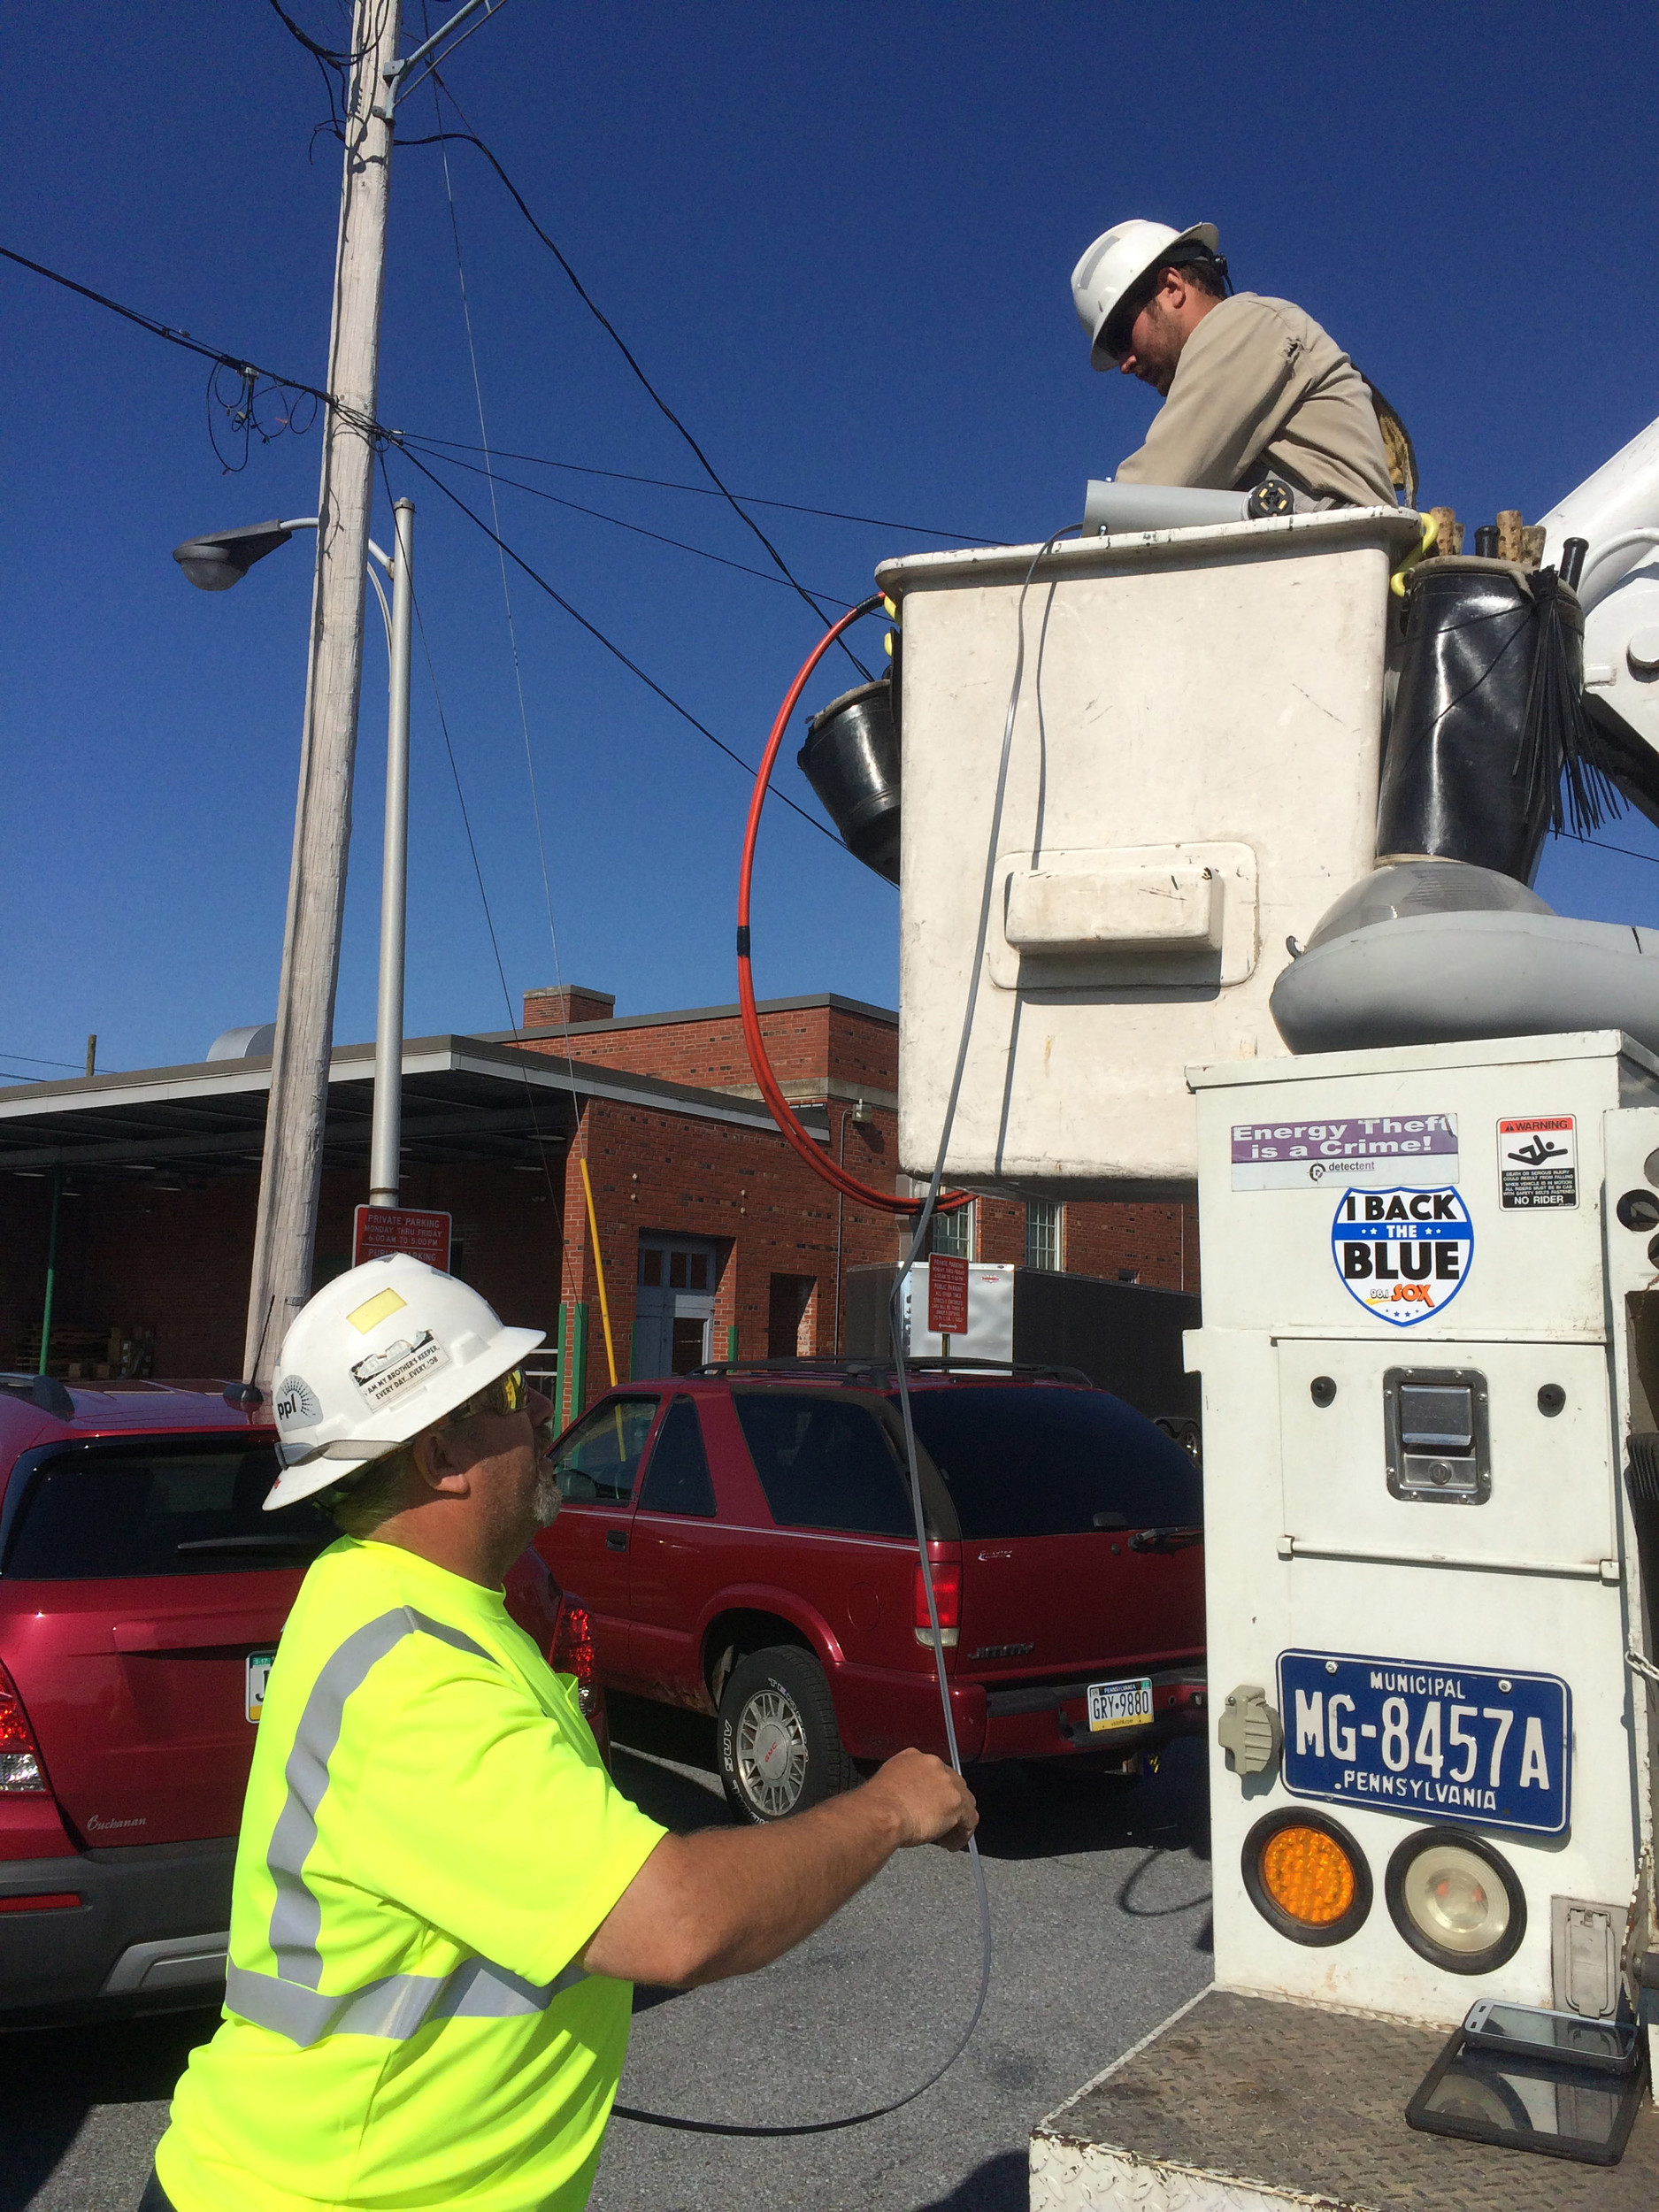 Bob Ludwig, left, and Tyler Hubbard of Middletown's public works department work on wiring for a new LED streetlight. Middletown's public works department replaced an old streetlight with a new LED one Friday morning behind the Press & Journal office at 20 S. Union St. The borough is replacing 660 lights with the new energy-efficient ones. They are almost halfway done. The light behind the P&J was the 315th. Weather permitting, it will take four or five more weeks to finish the rest.